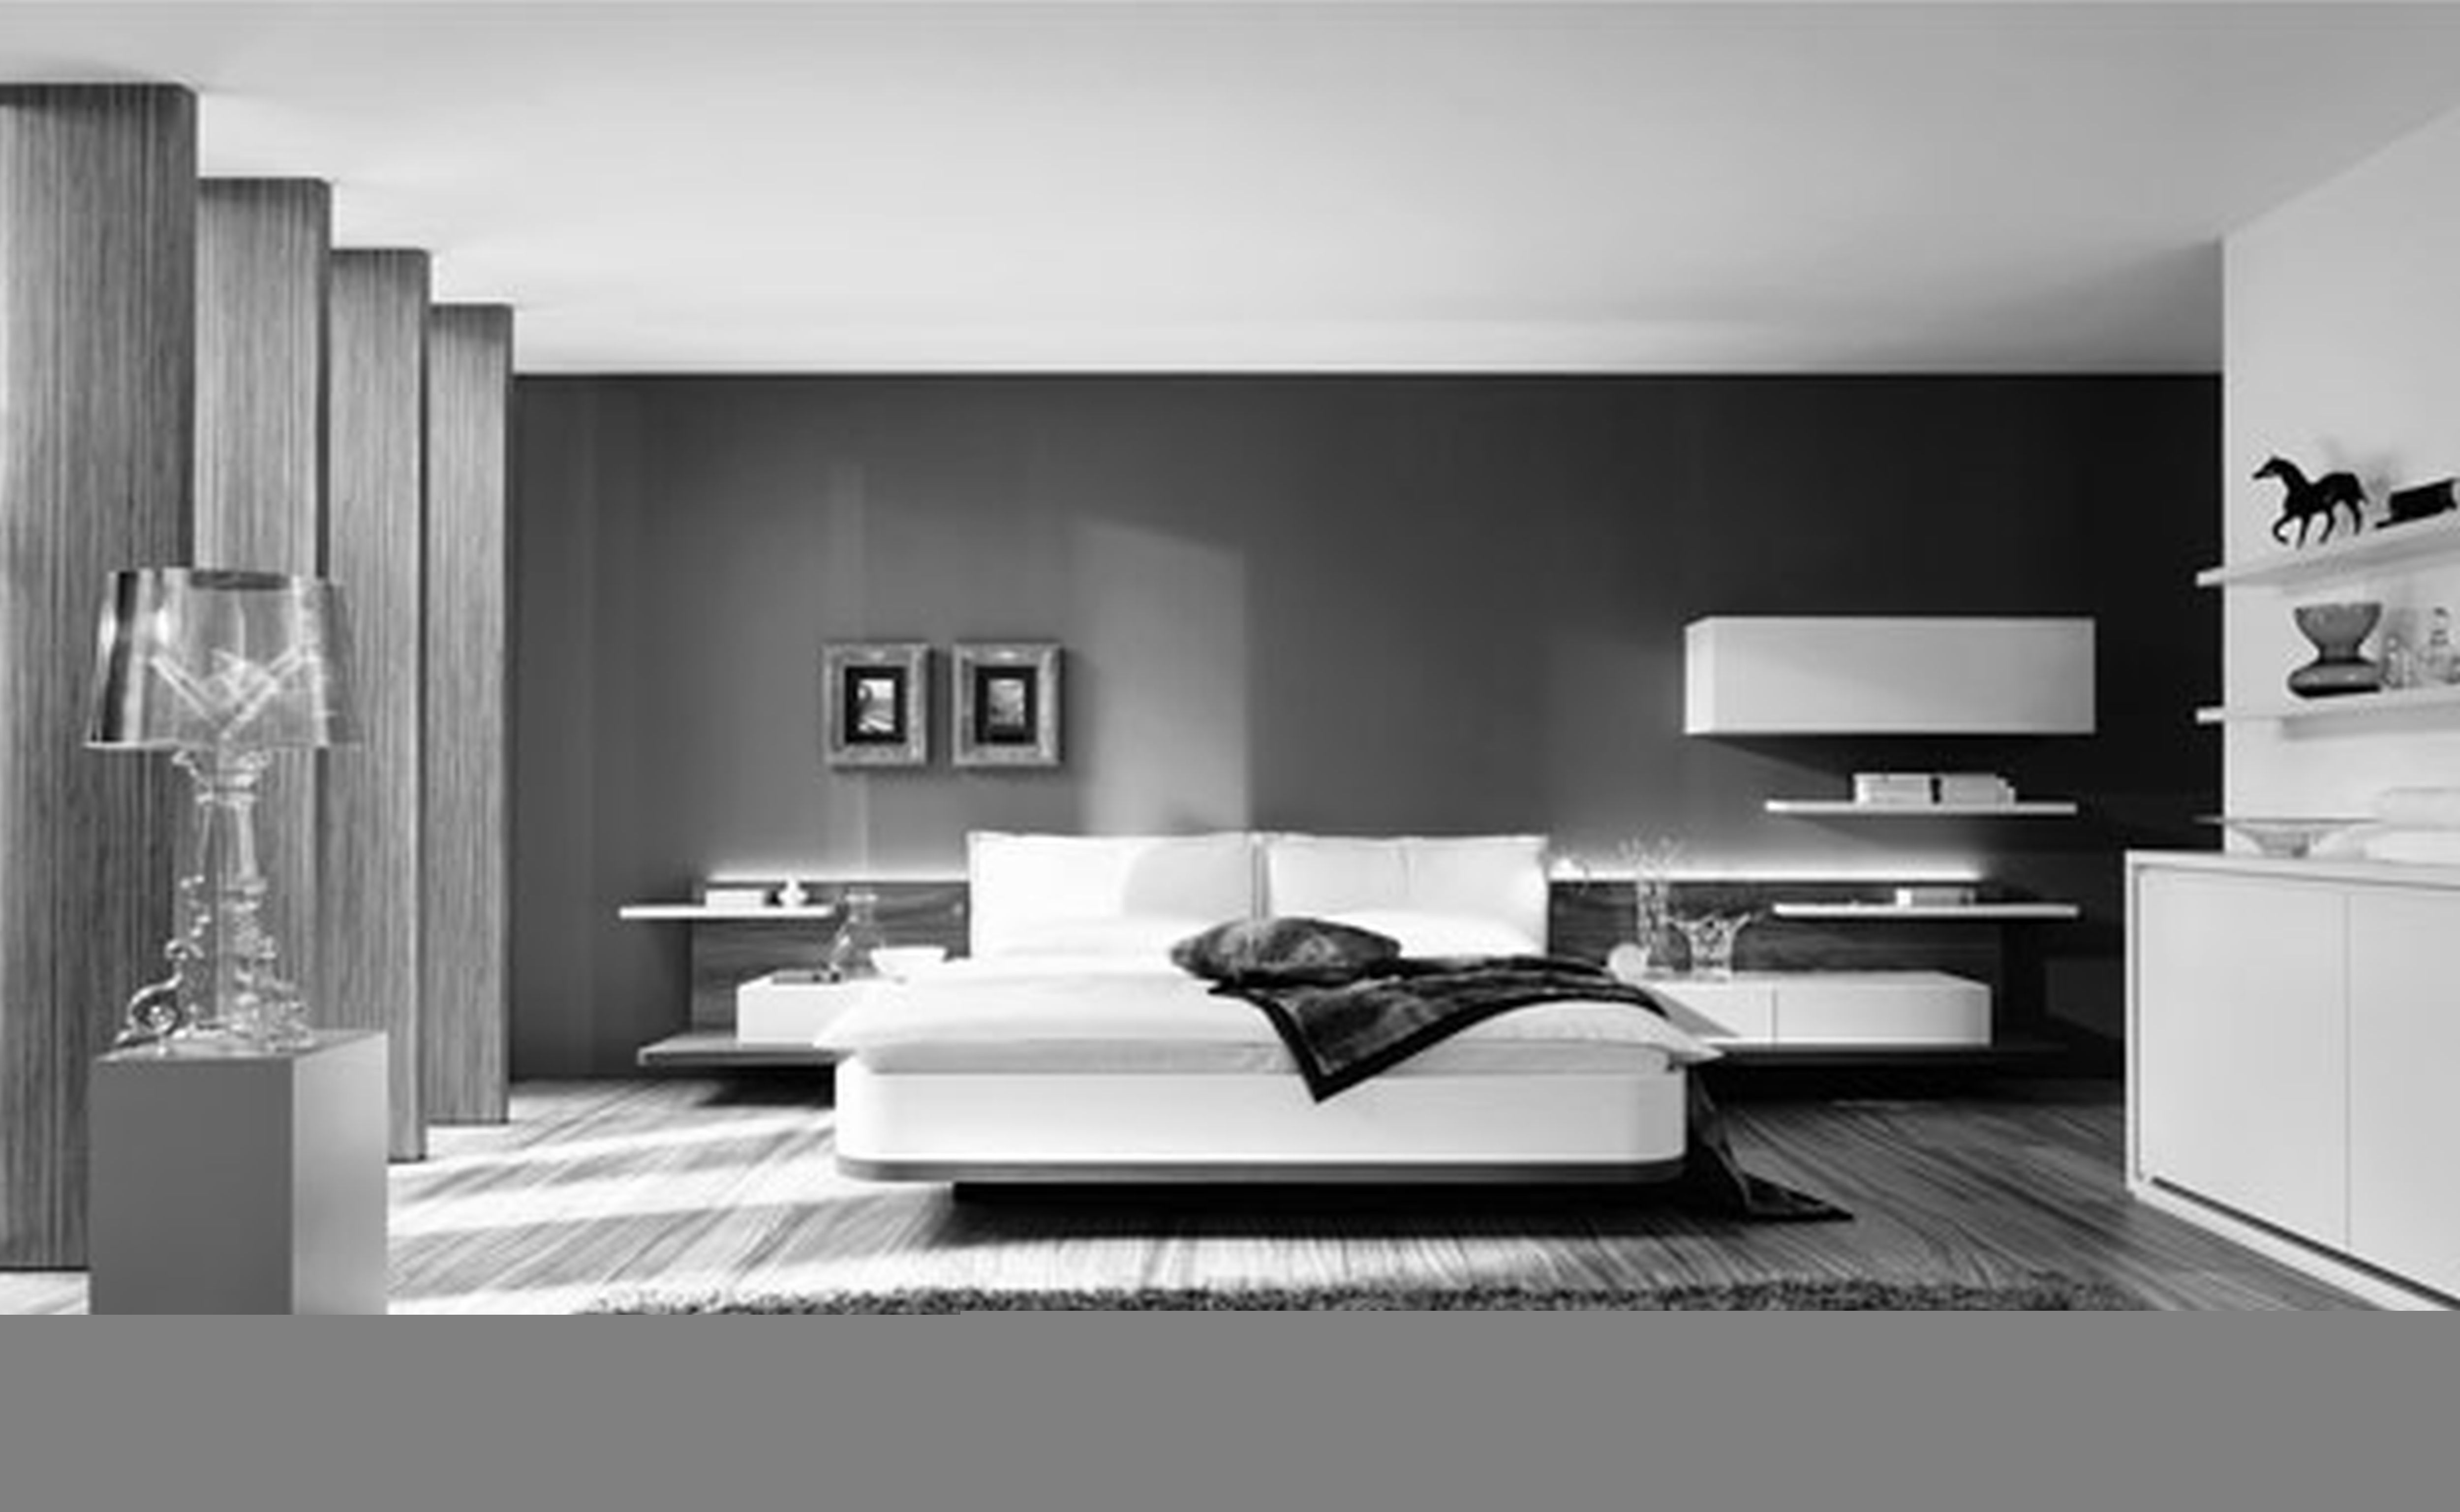 cool modern bed designs bedroom ideas pinterest bed design and